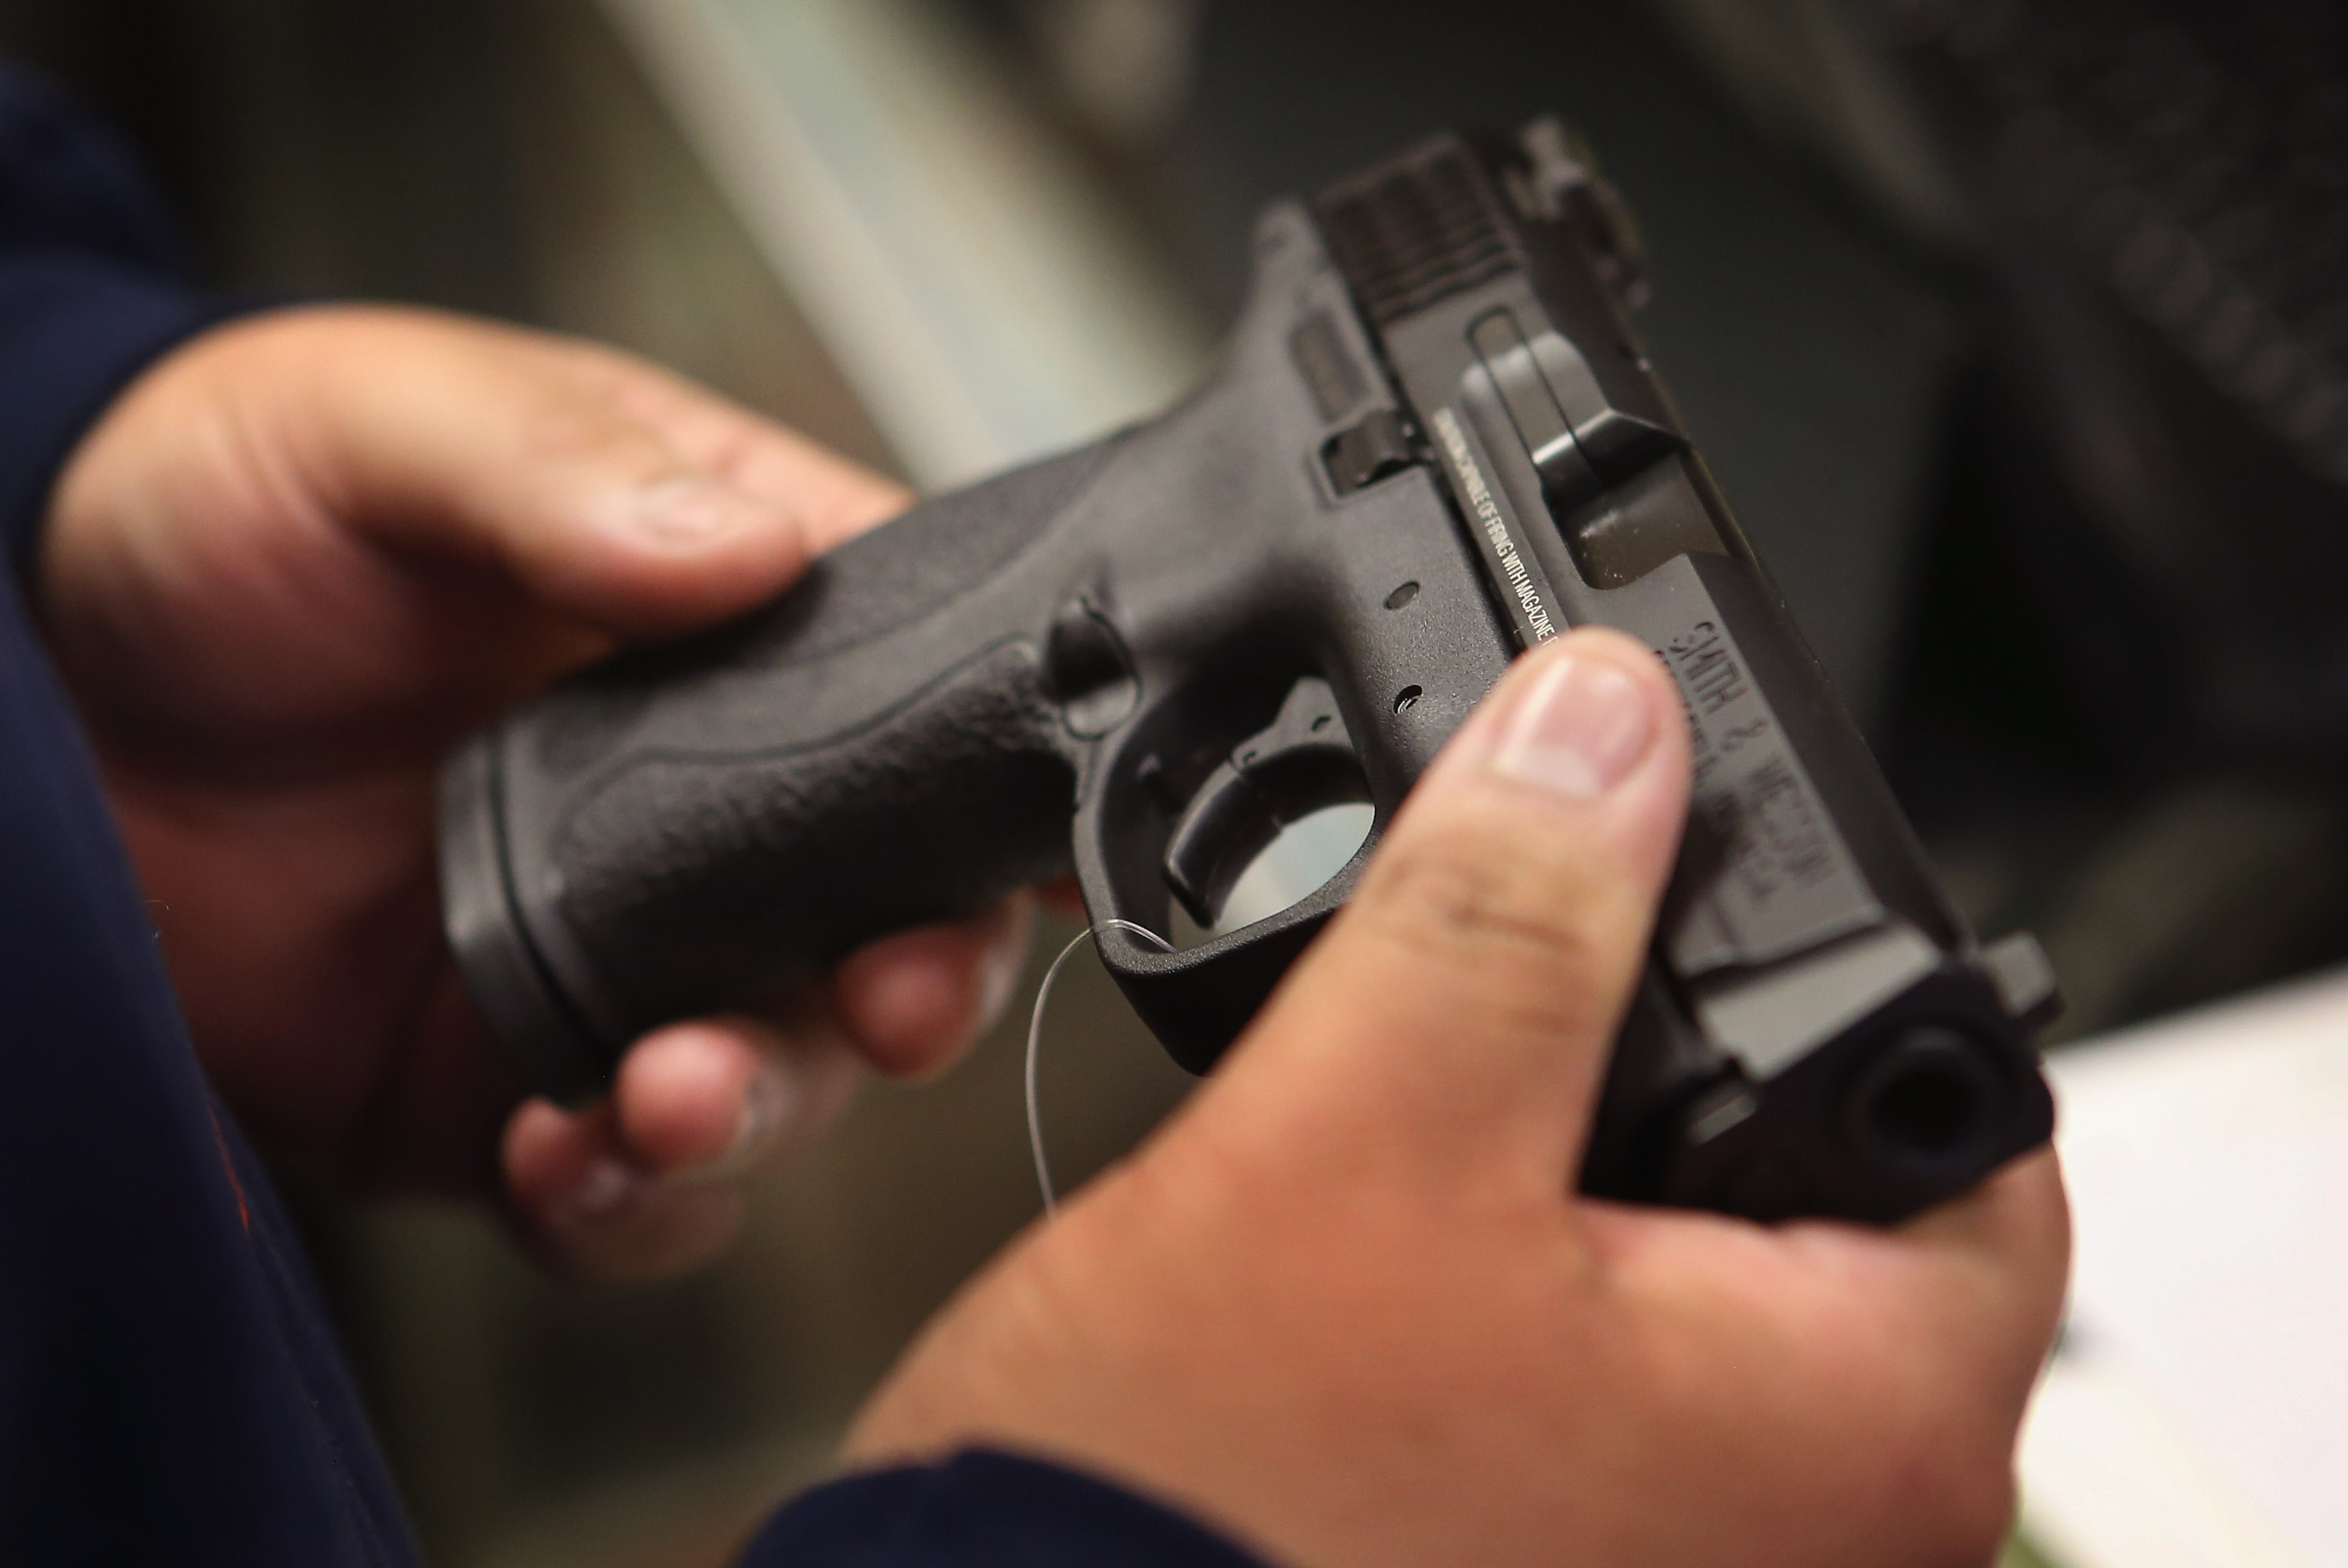 Guns killed more people than car crashes in 2017